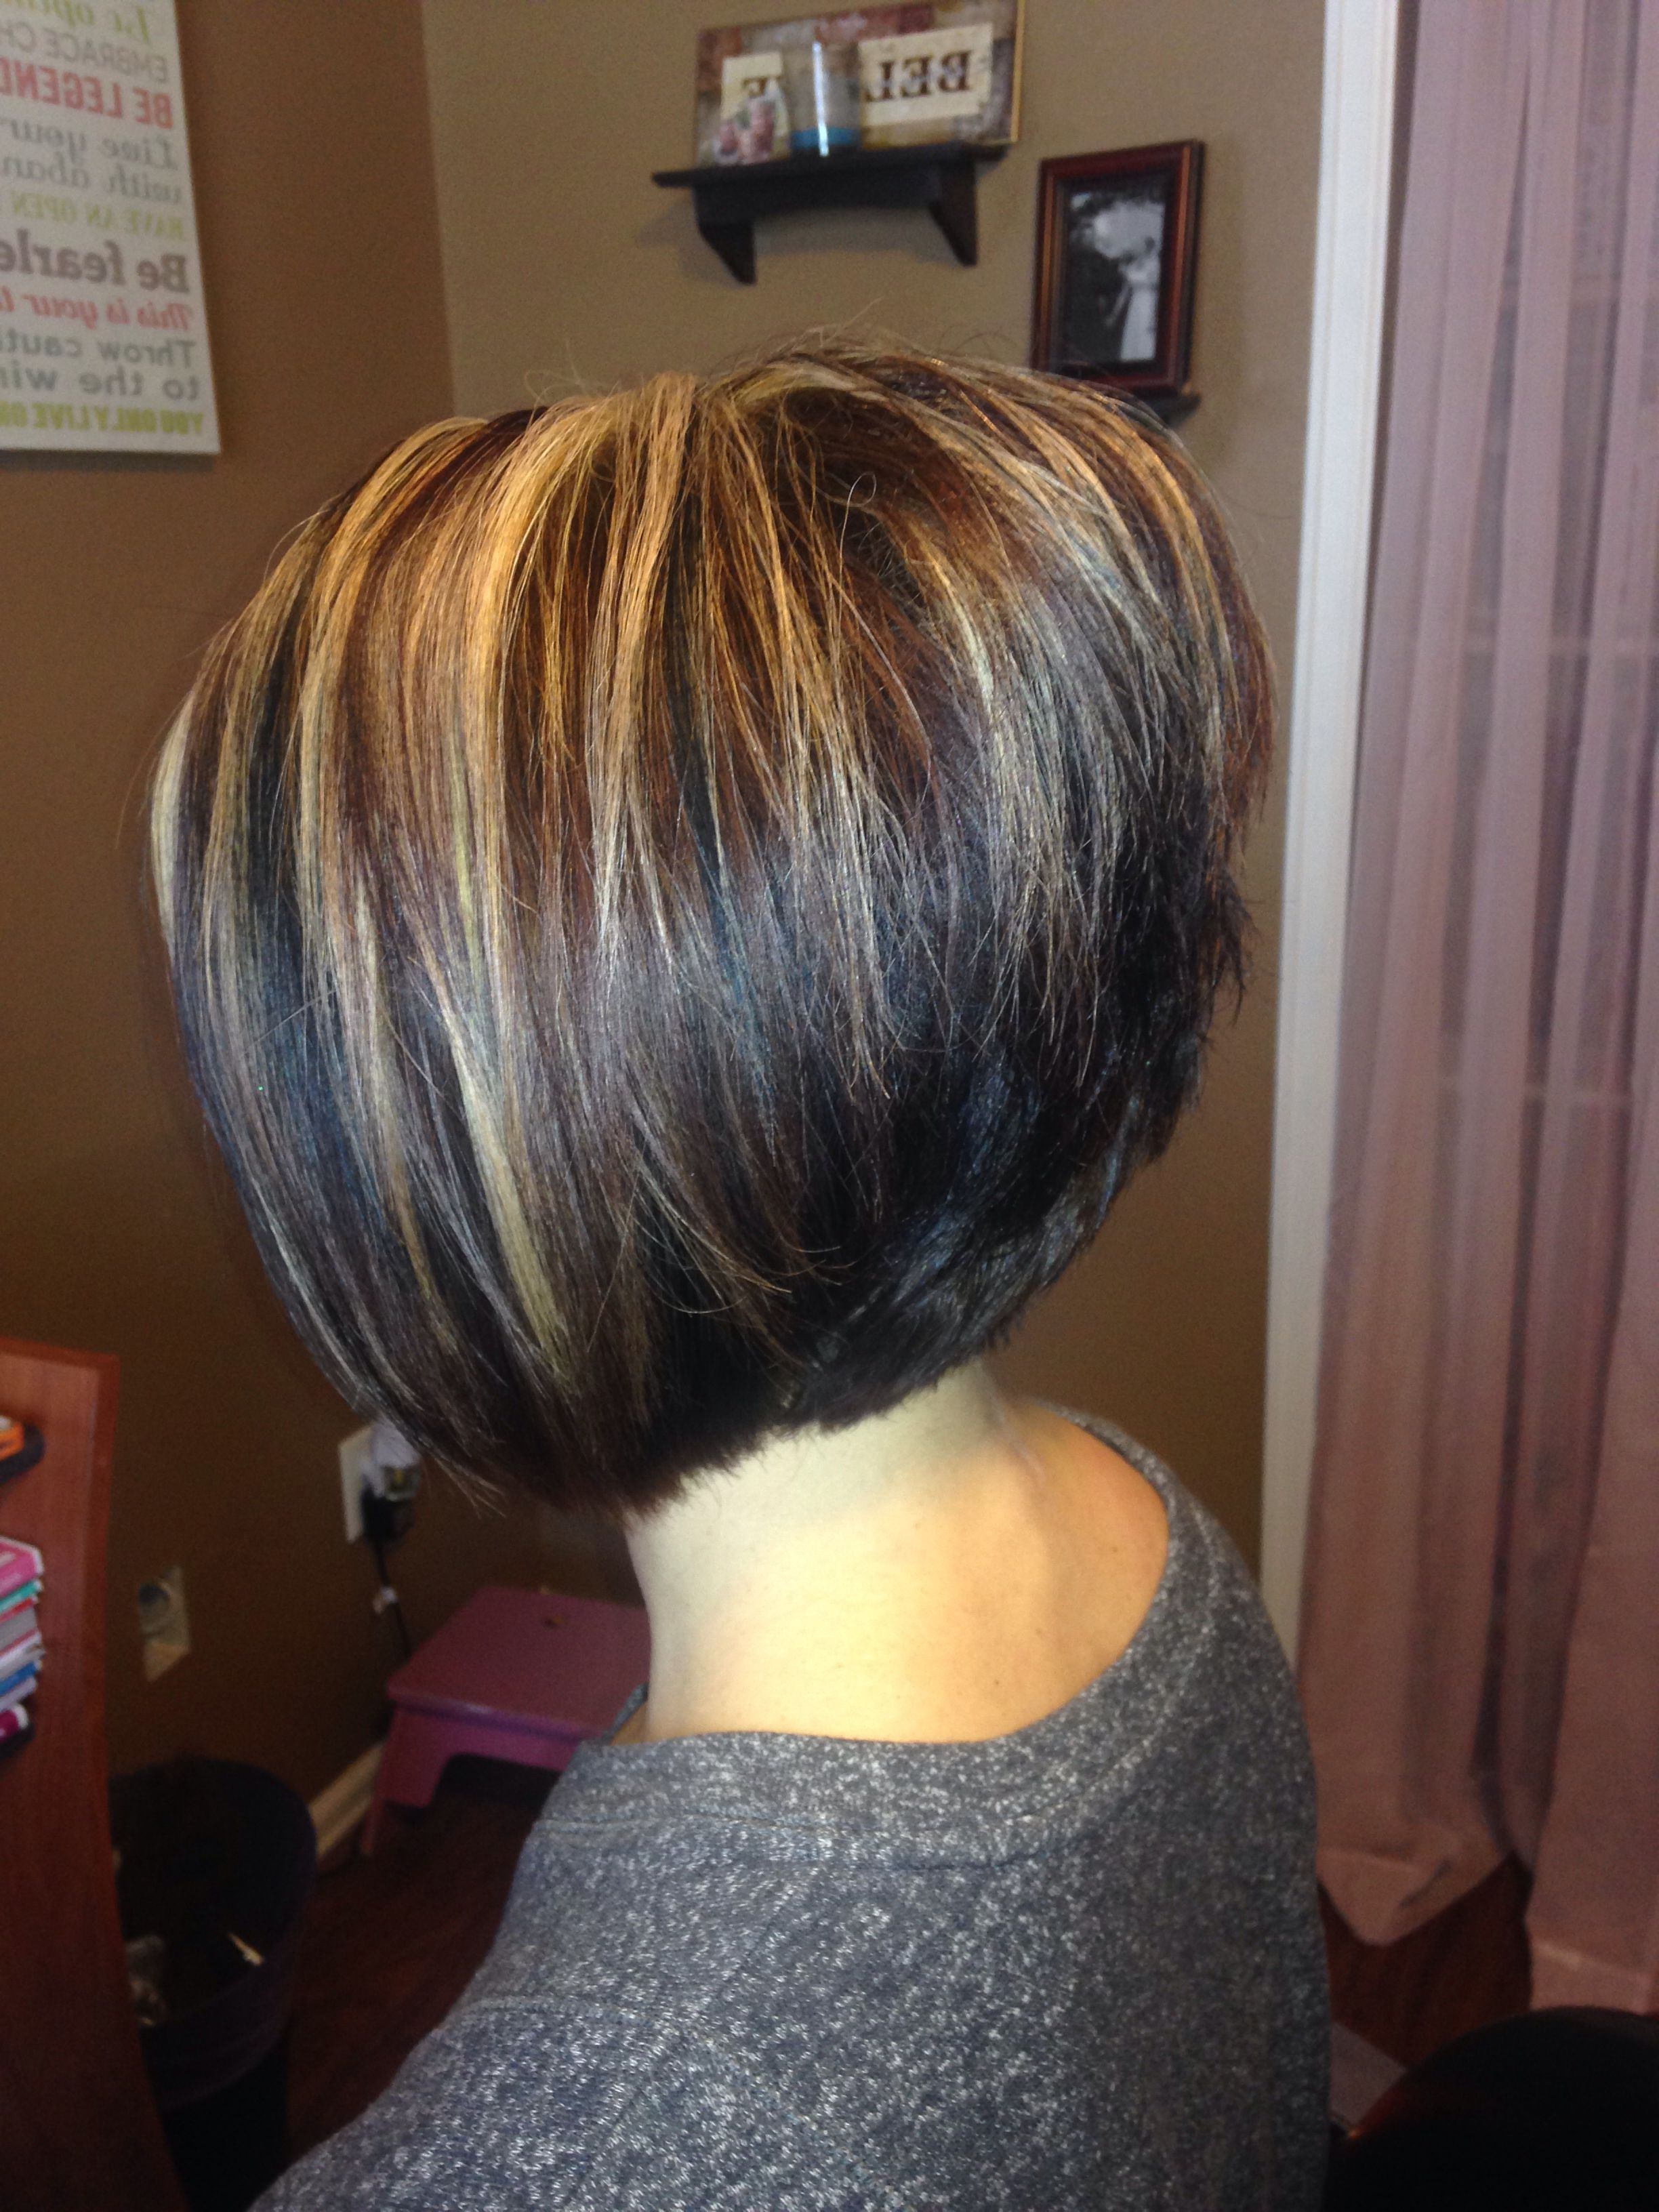 A Line Stacked Bob | Hair | Pinterest | Stacked Bobs, Bobs And Hair Cuts With Regard To Stacked Bob Hairstyles With Highlights (View 4 of 20)